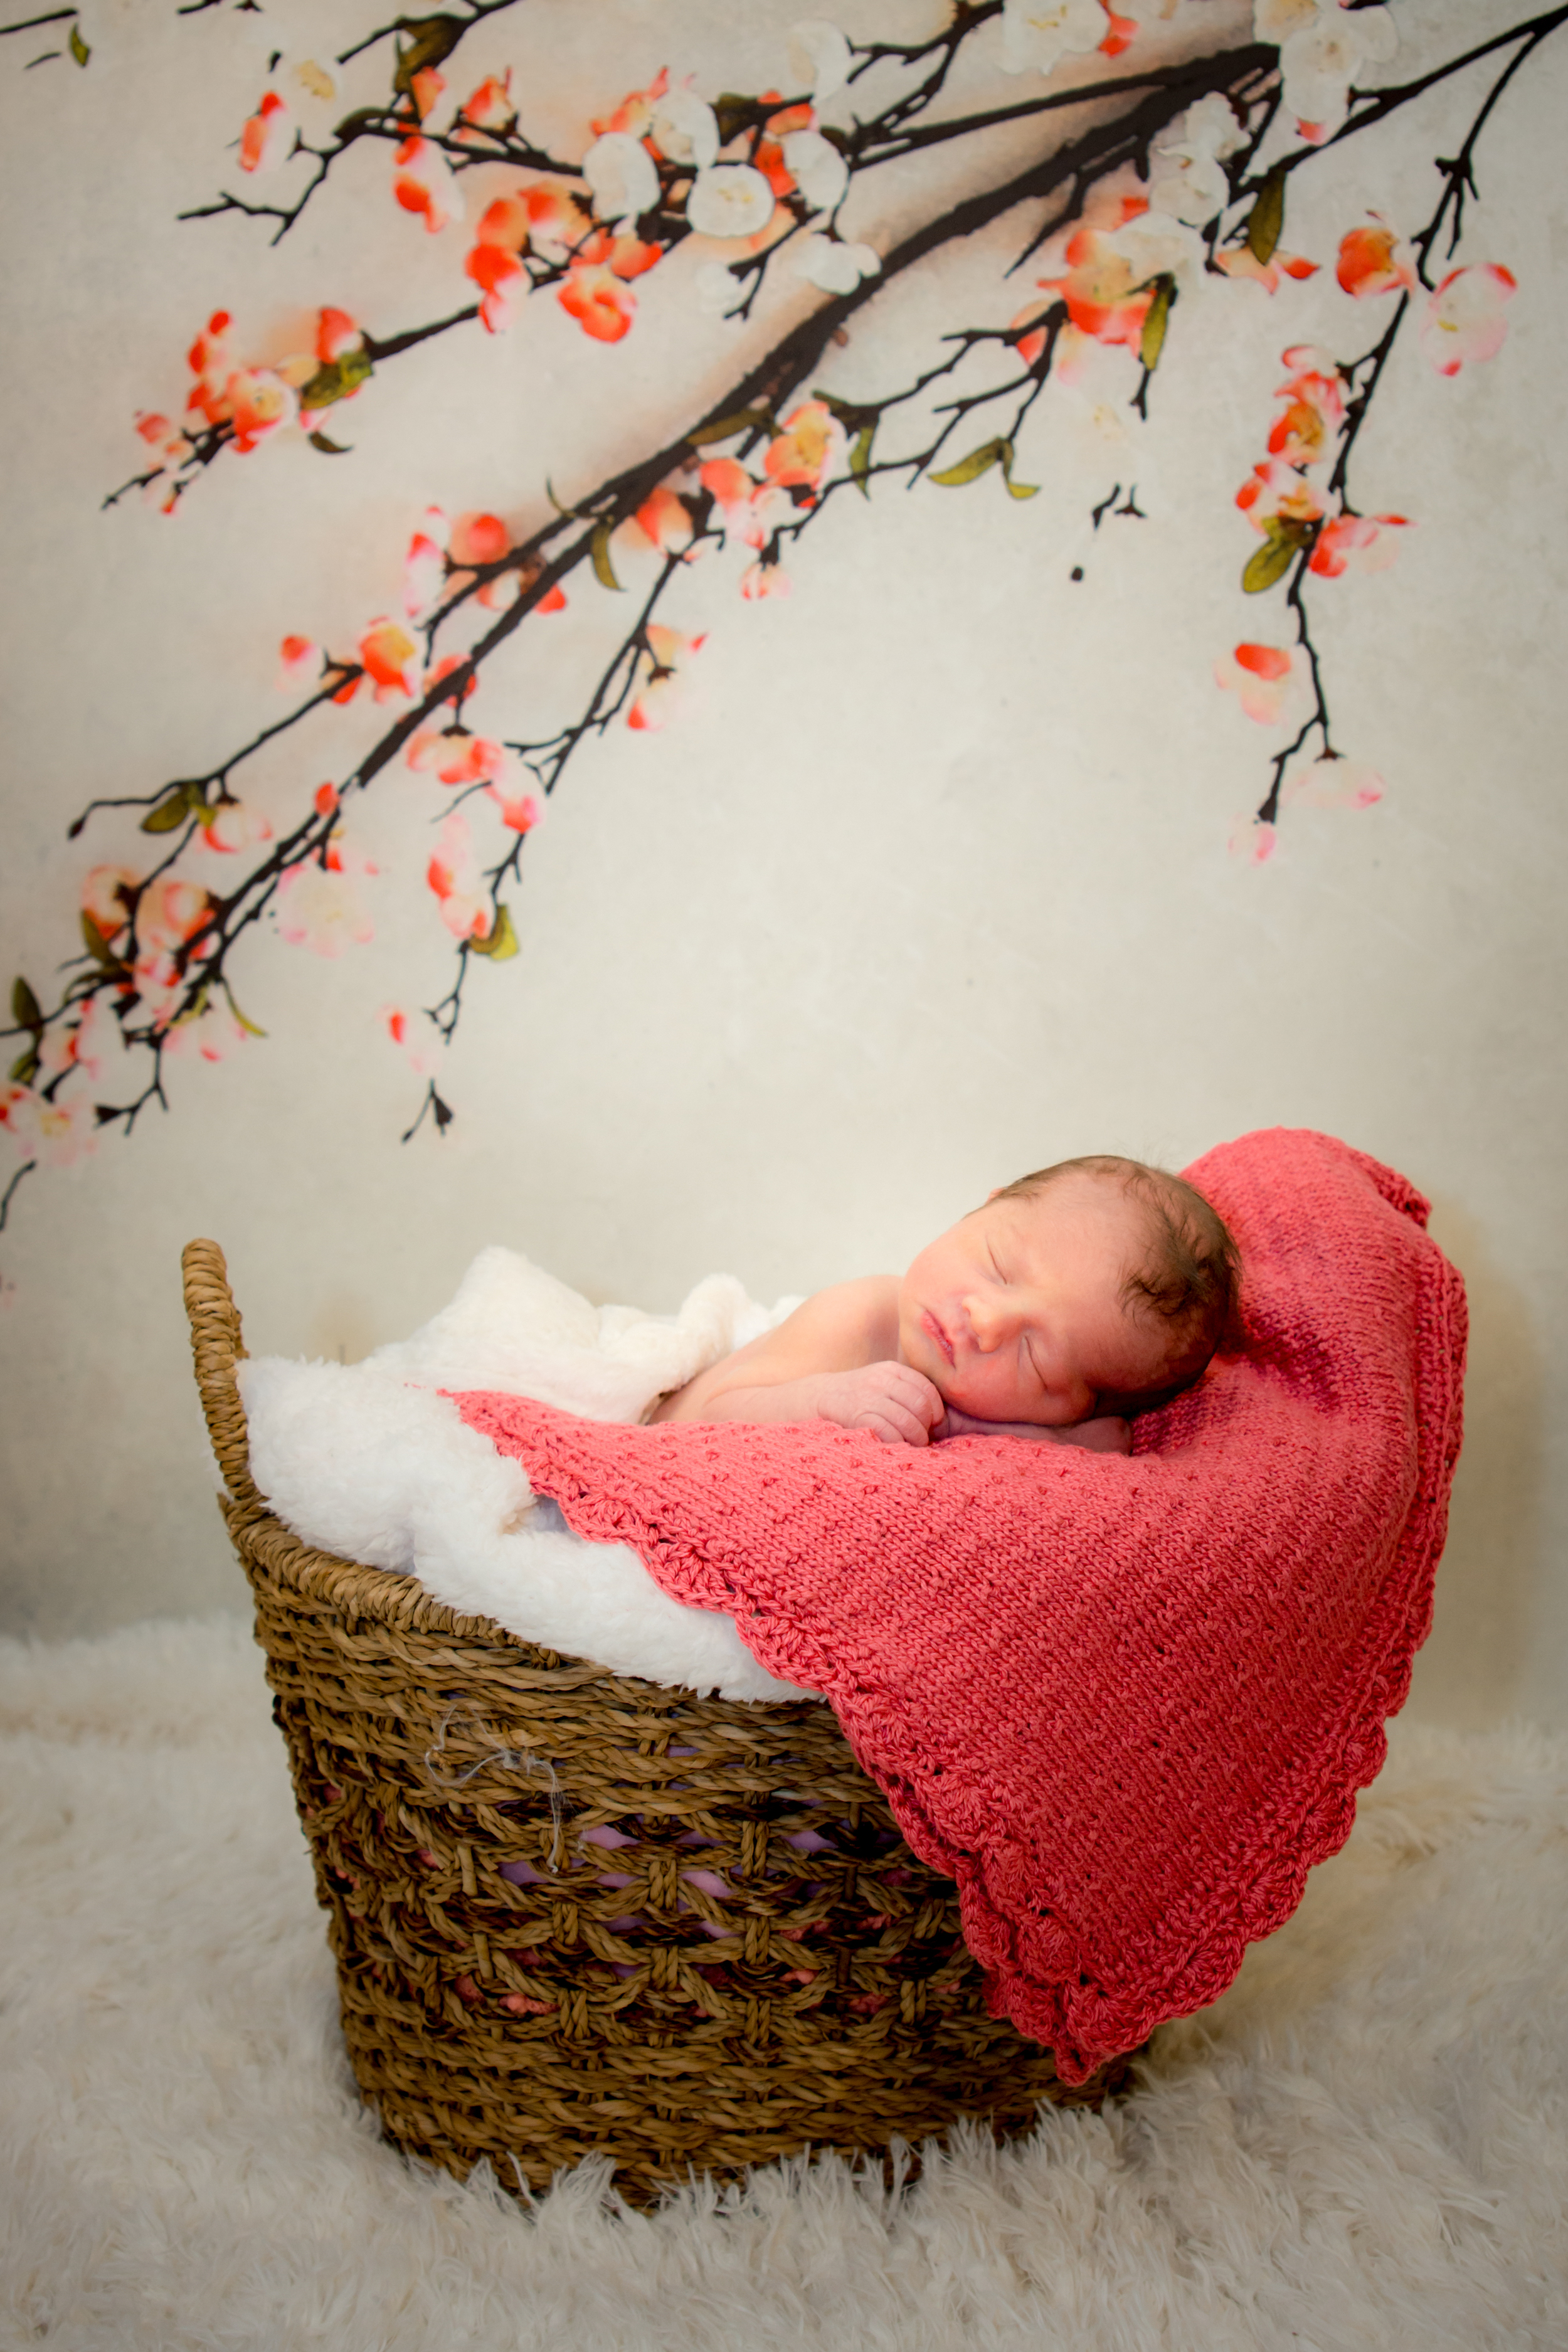 LISTEN TO LORIE'S LULLABIES BY CLICKING ON THE IMAGE